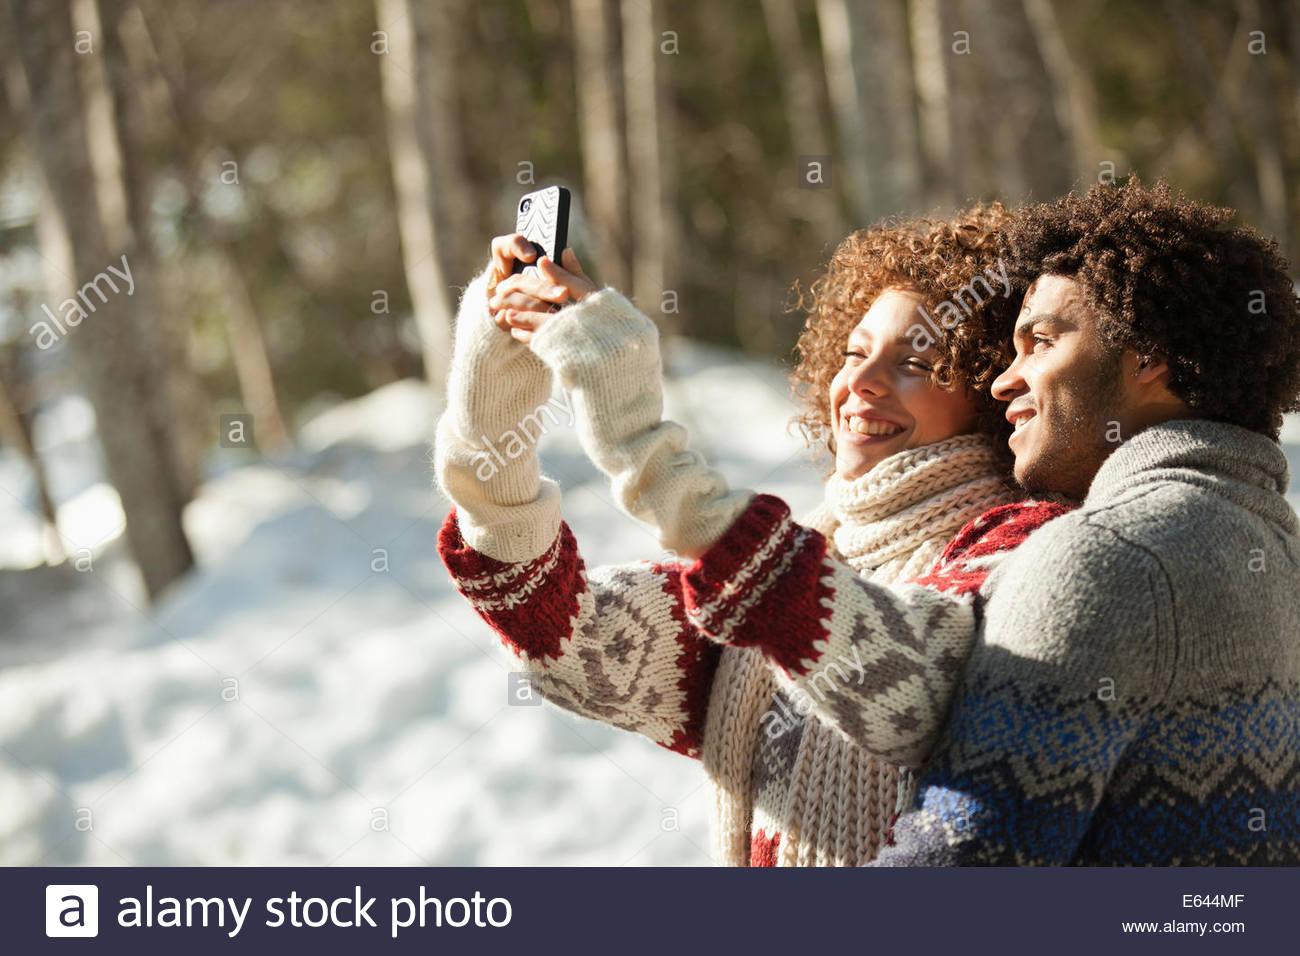 Couple photographing themselves with cell phone - Stock Image